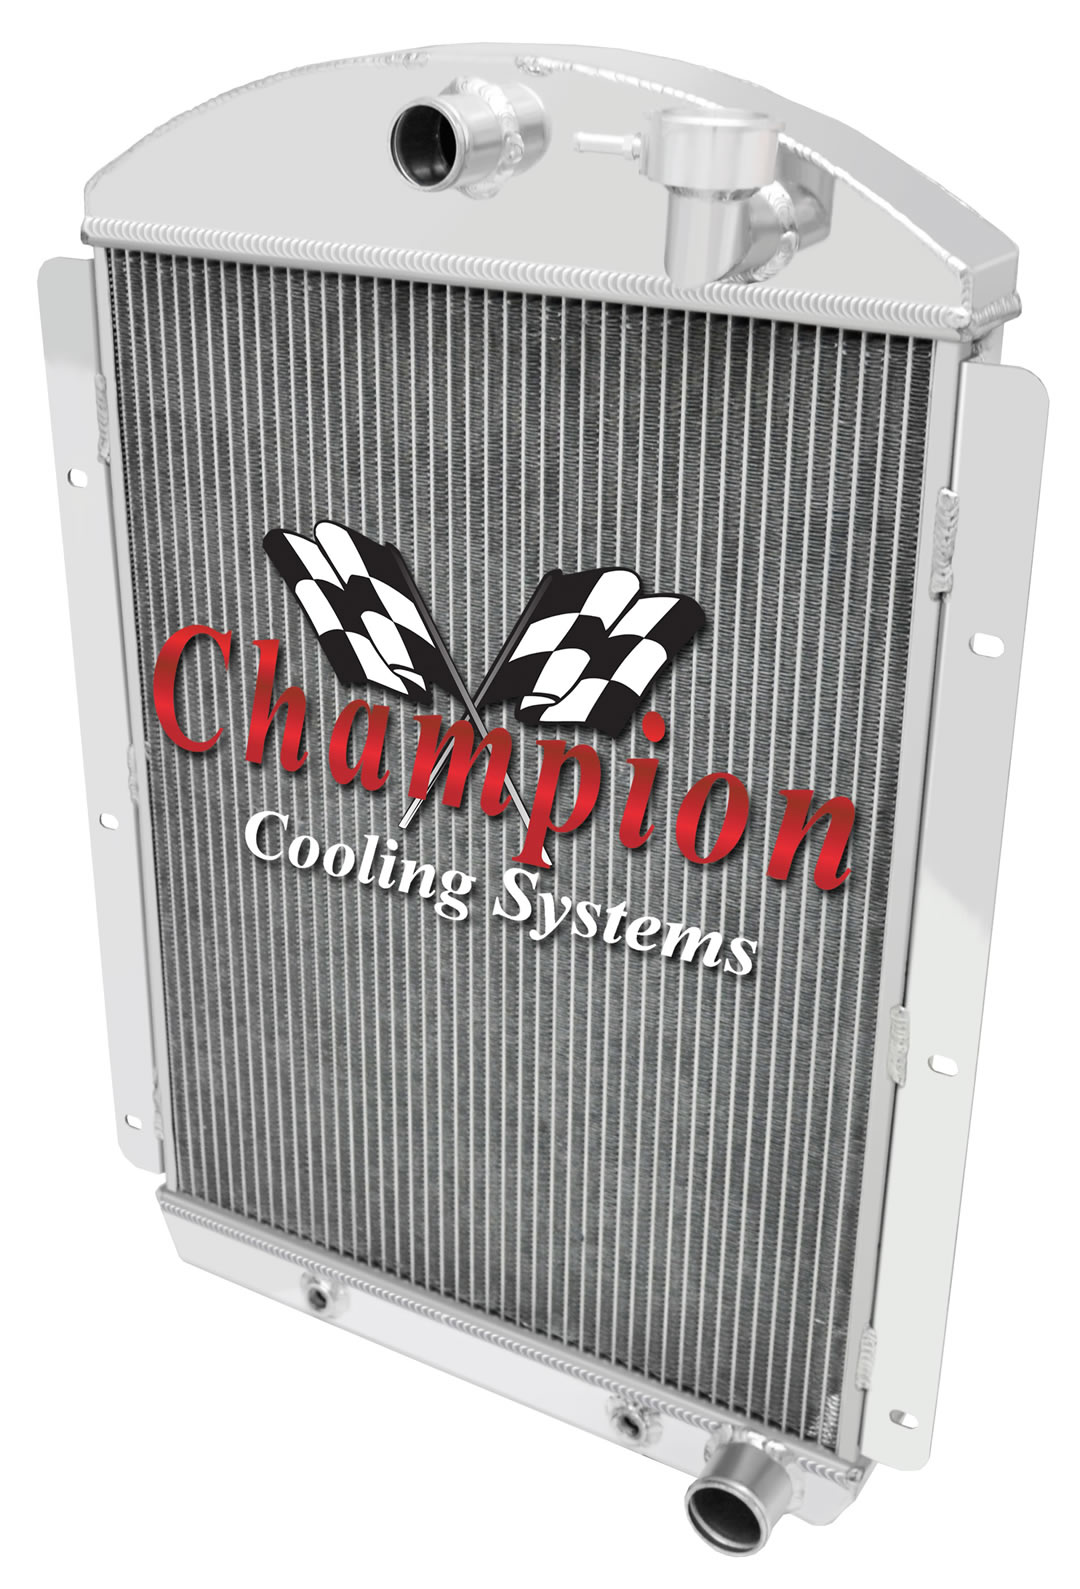 hight resolution of champion radiators fan wiring diagram radiator fan motor blue and brown wires wiring diagram champion